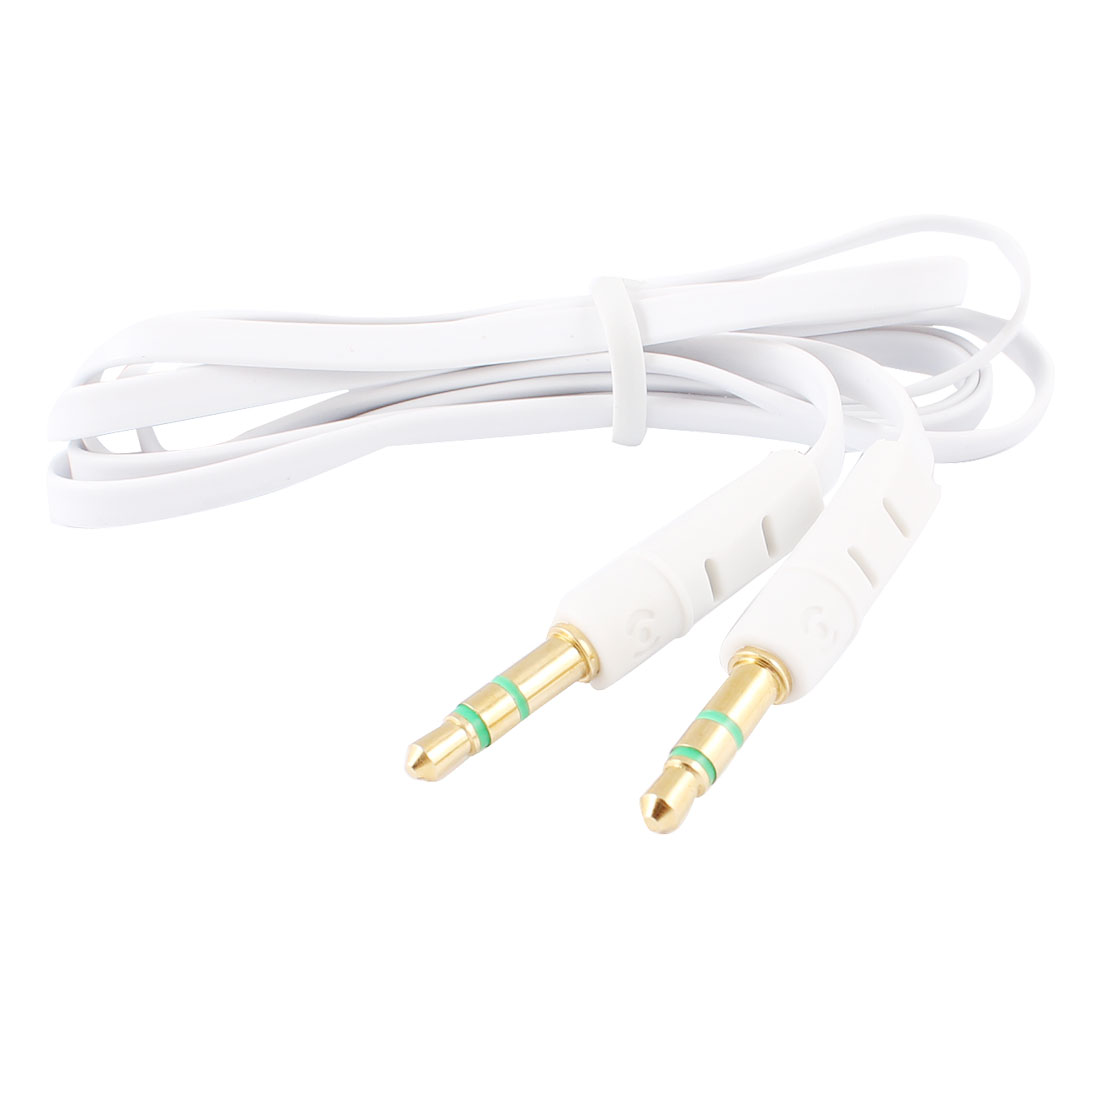 3.3Ft 3.5mm Male to Male M/M Jack Stereo Audio Cable Cord White for MP4 MP3